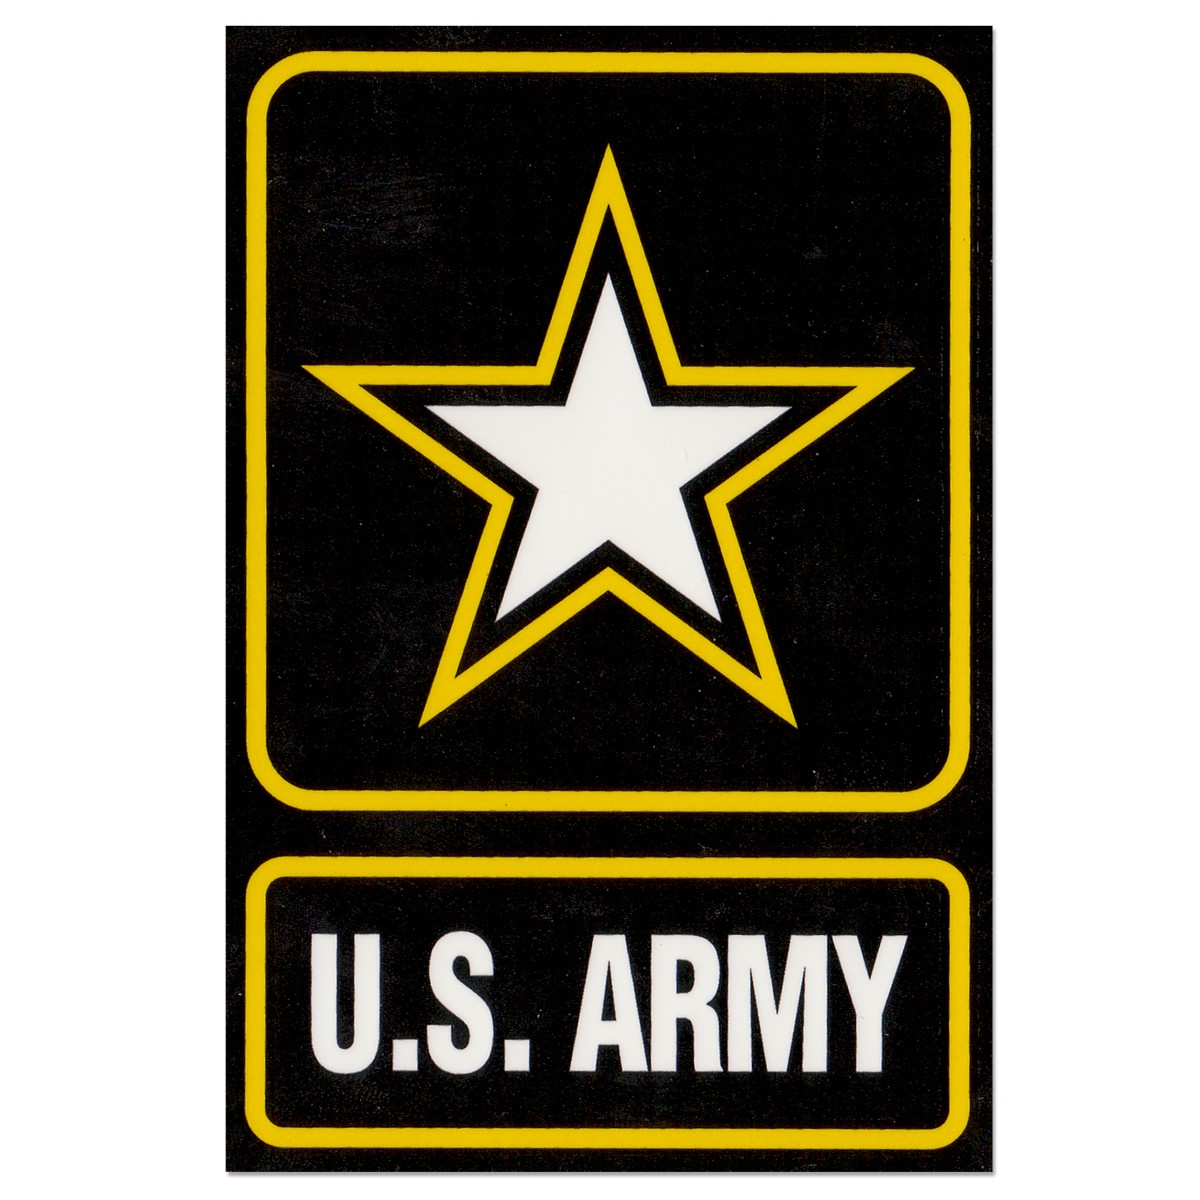 Us Army Logo 7733 Hd Wallpapers in Logos   Imagescicom 1200x1200